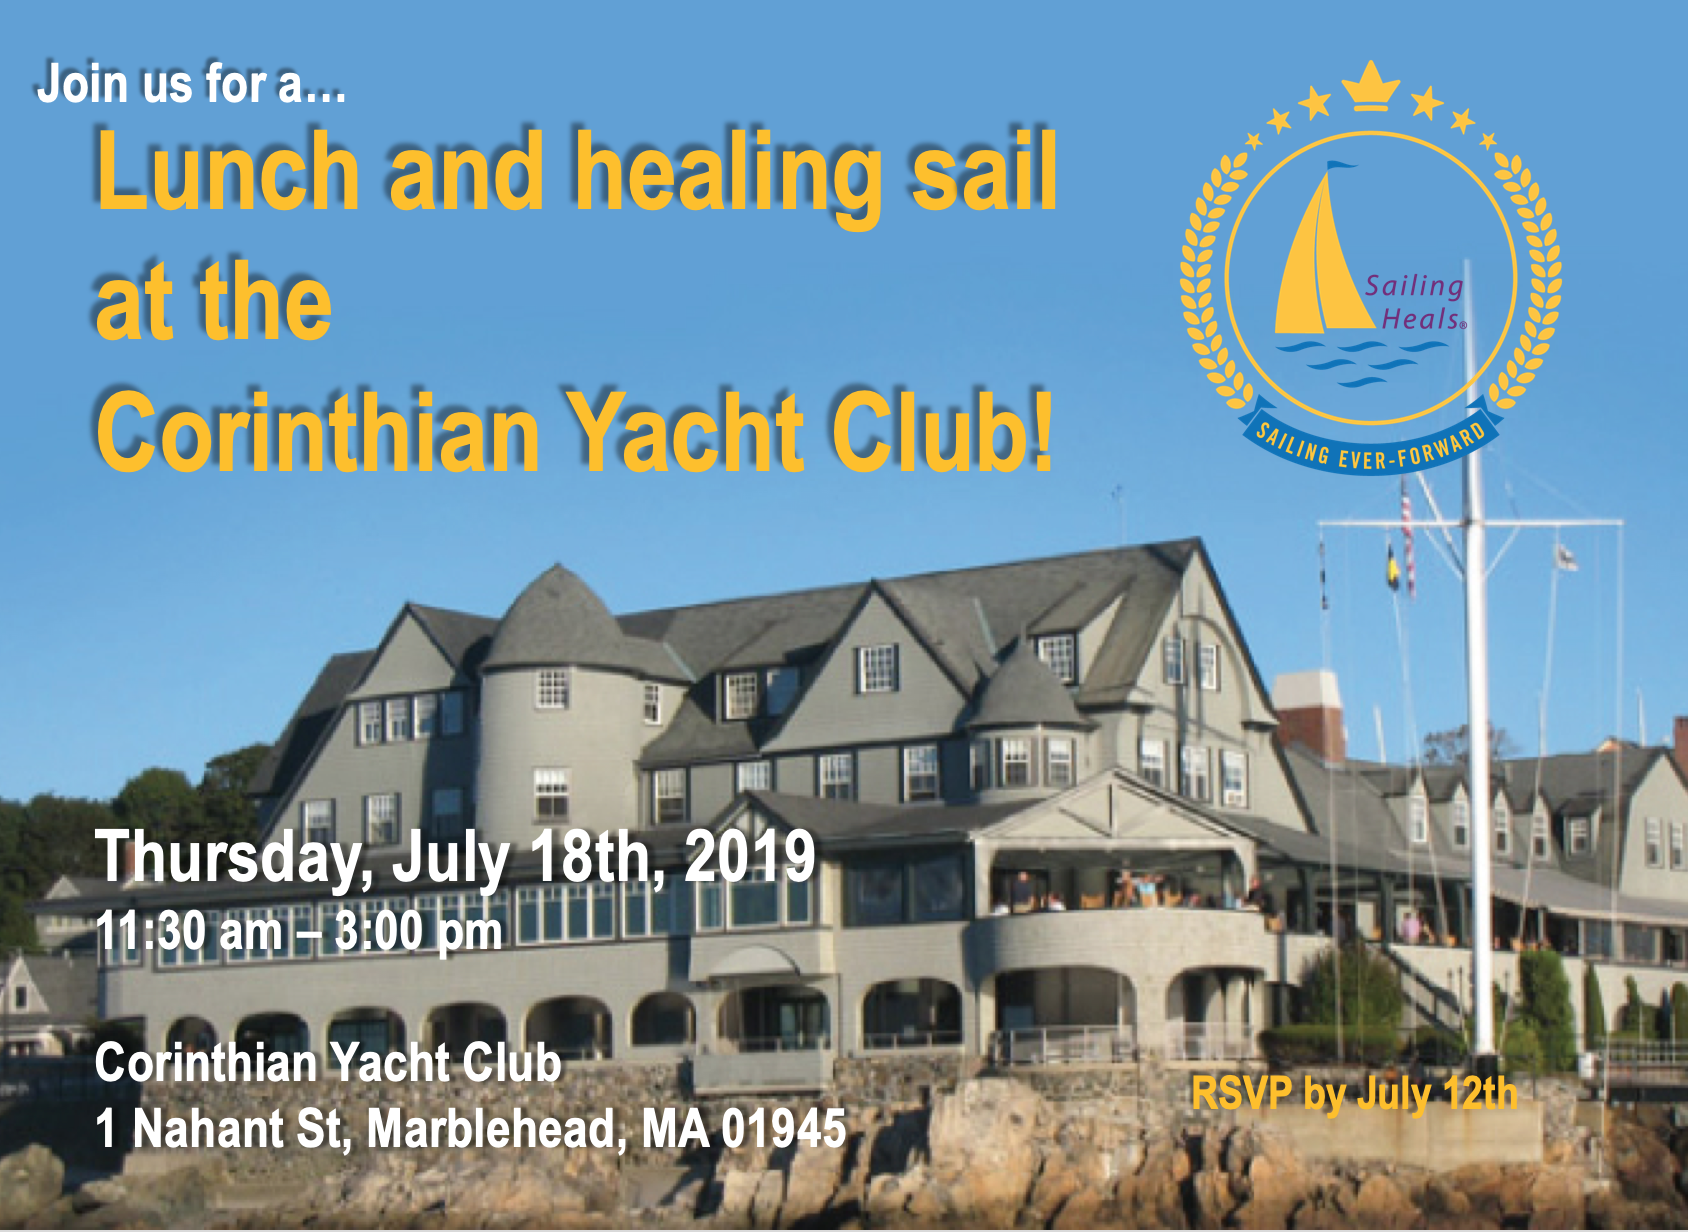 7.18.19 Corinthian Yacht Club lunch and healing sail